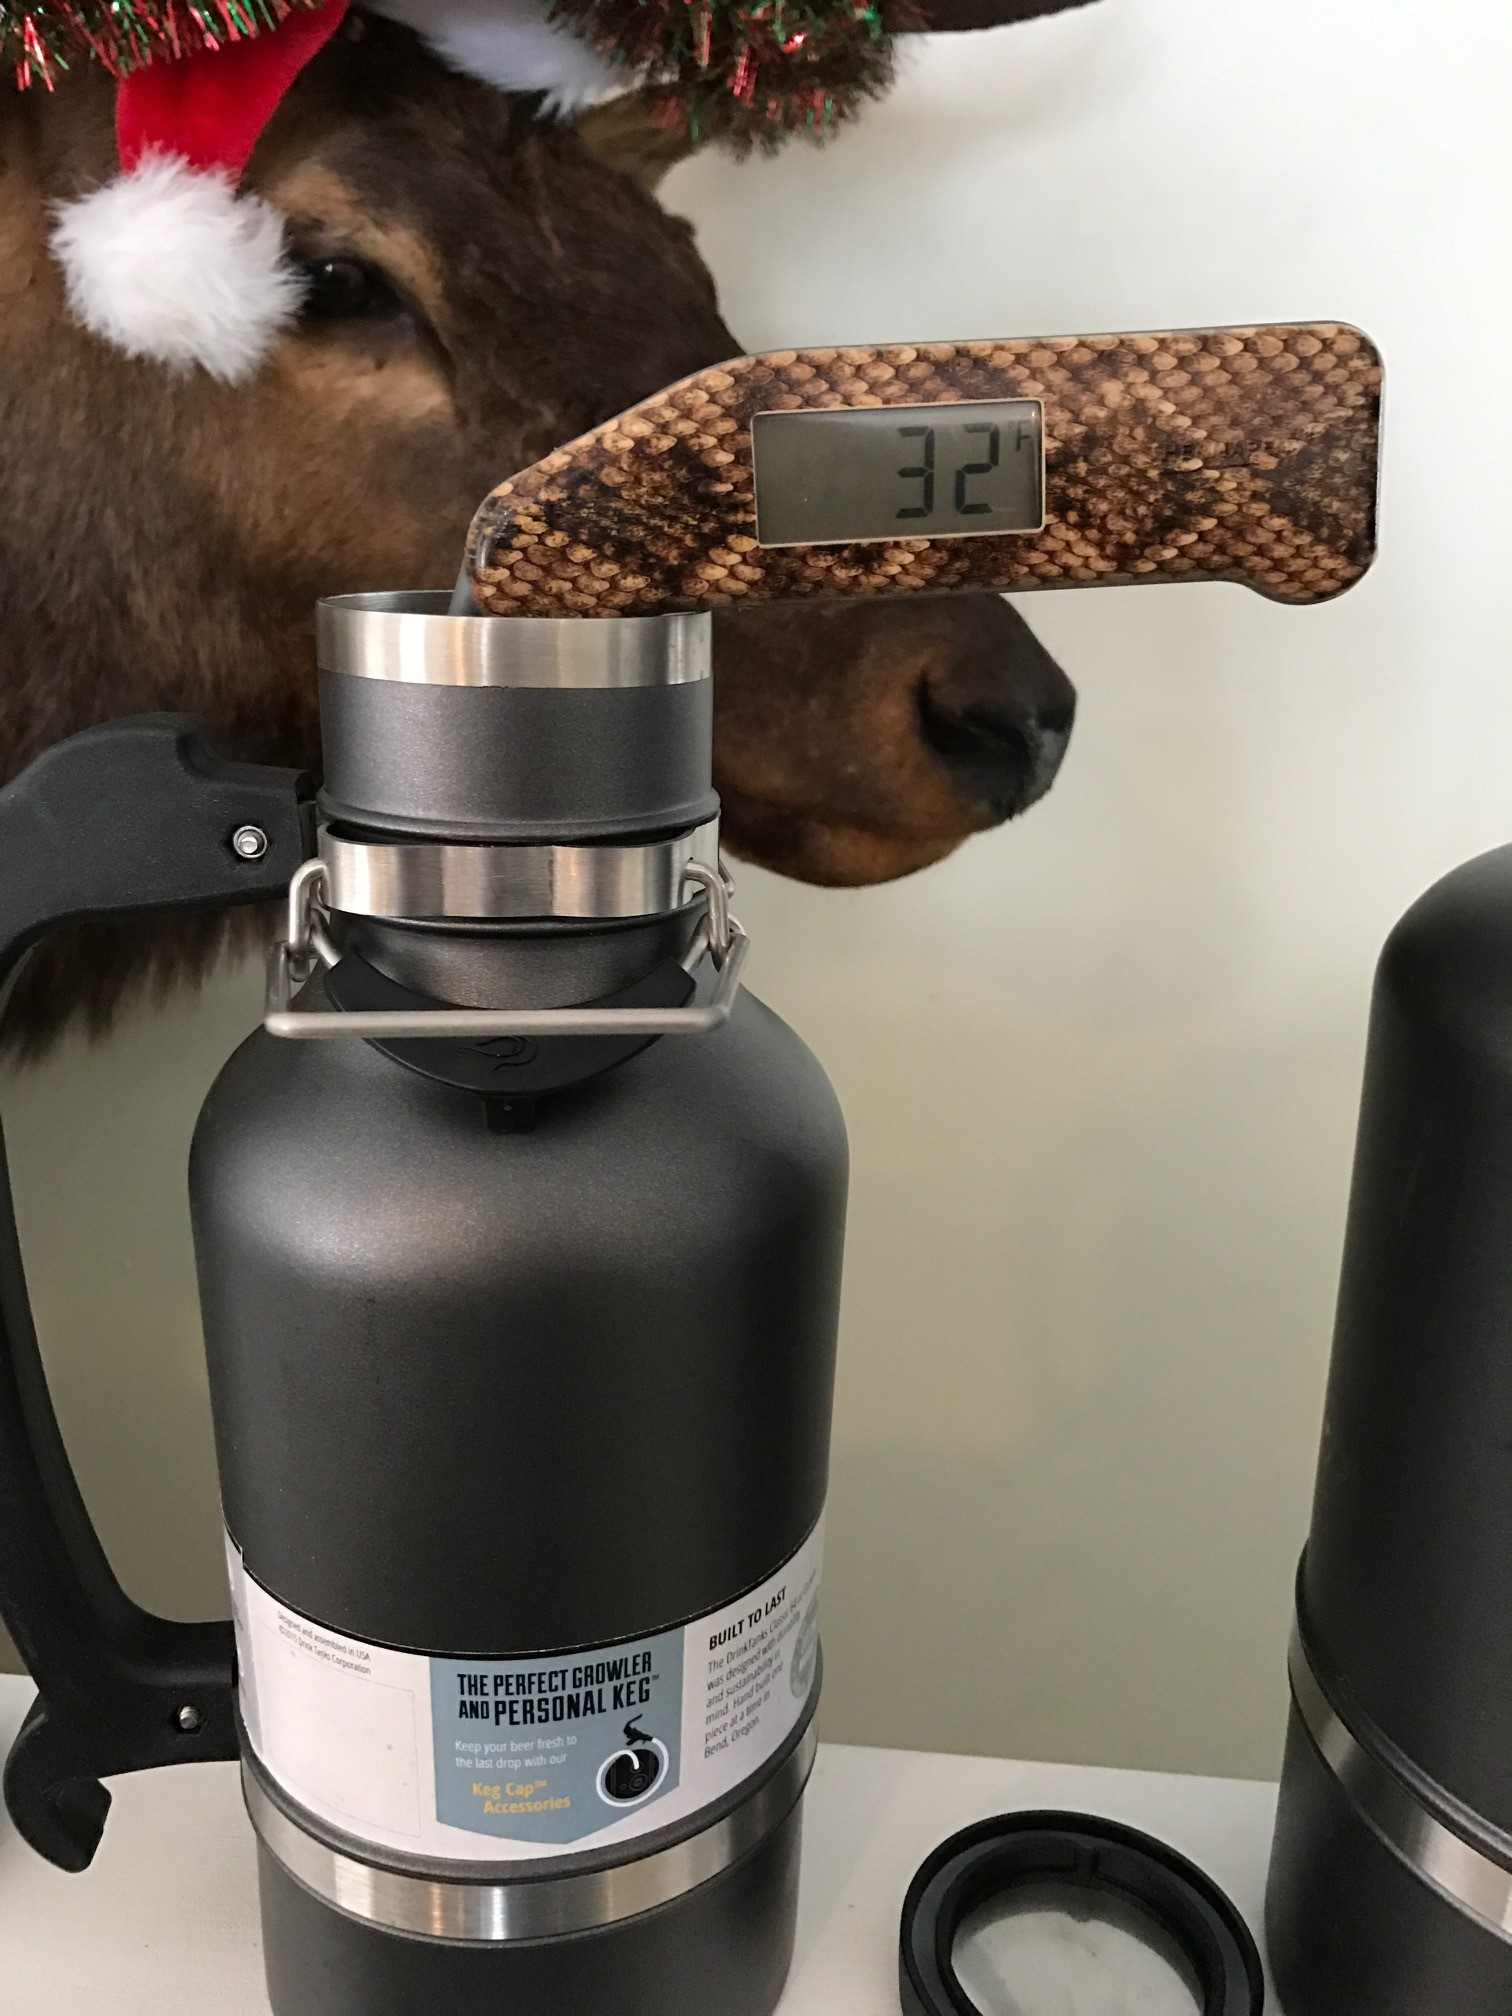 DrinkTanks® 128 oz and 64 oz Insulated Growlers With Keg Cap Accessory Kit